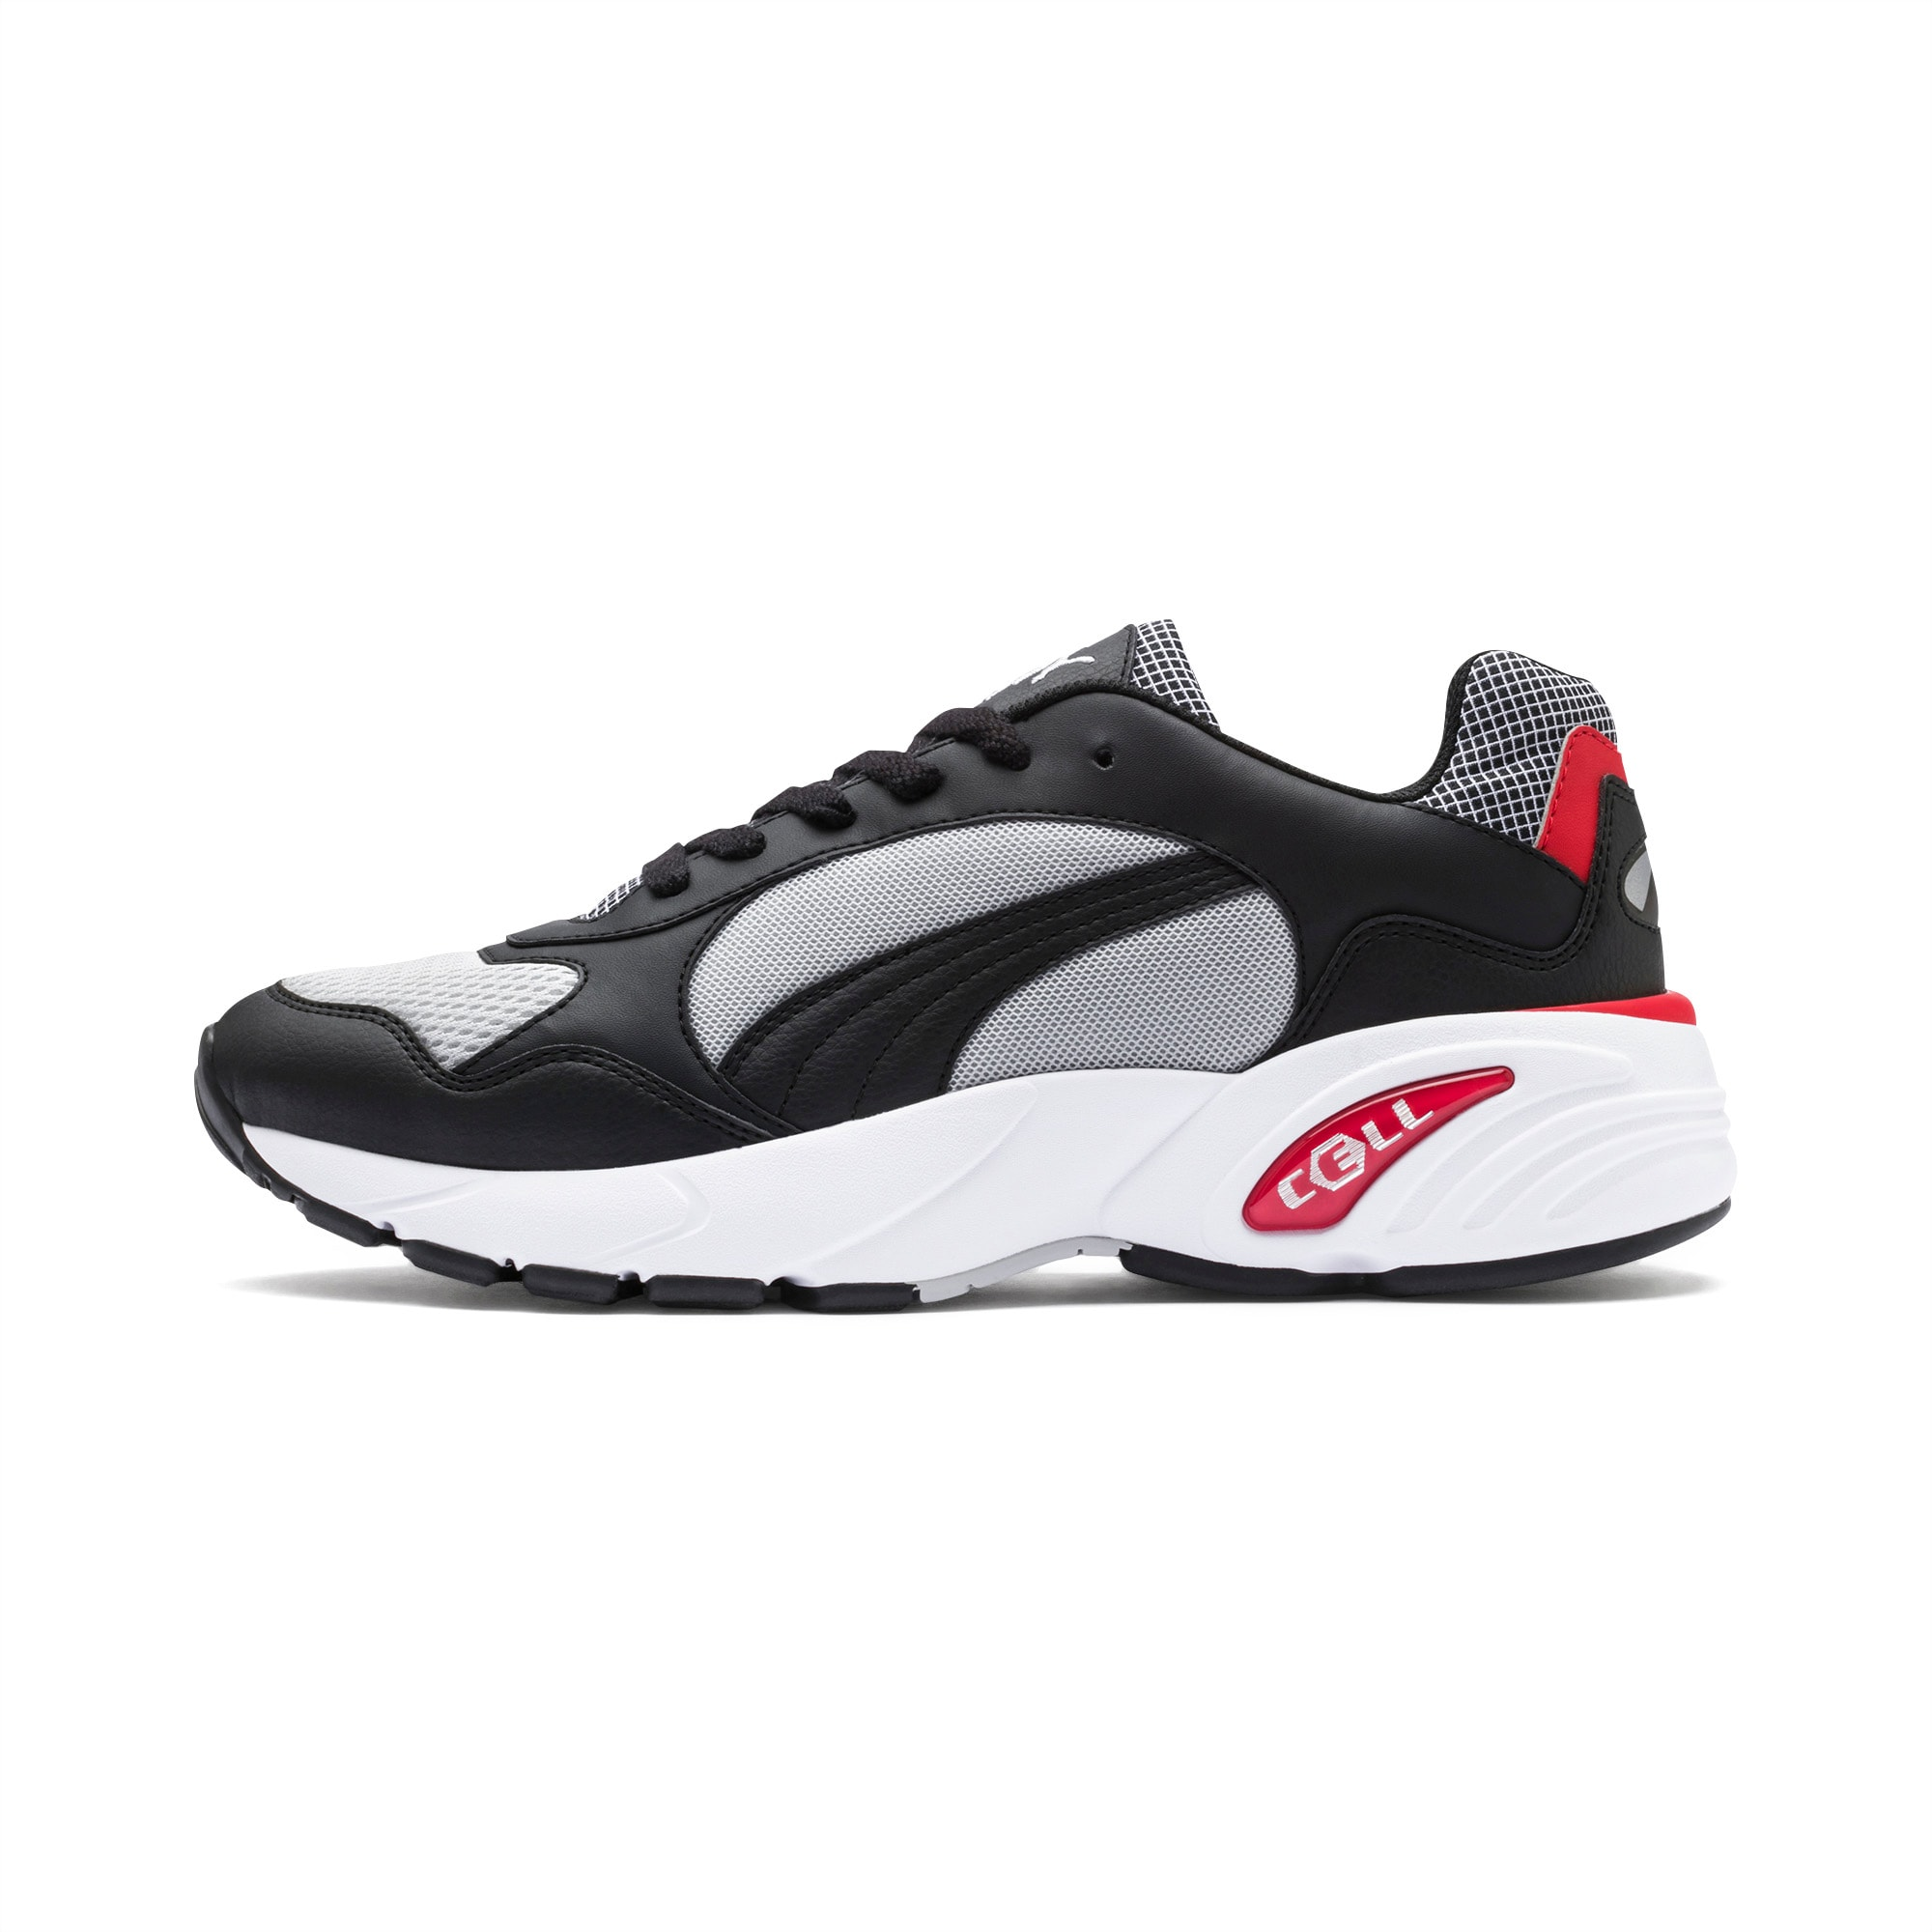 CELL Viper Street Racer Trainers